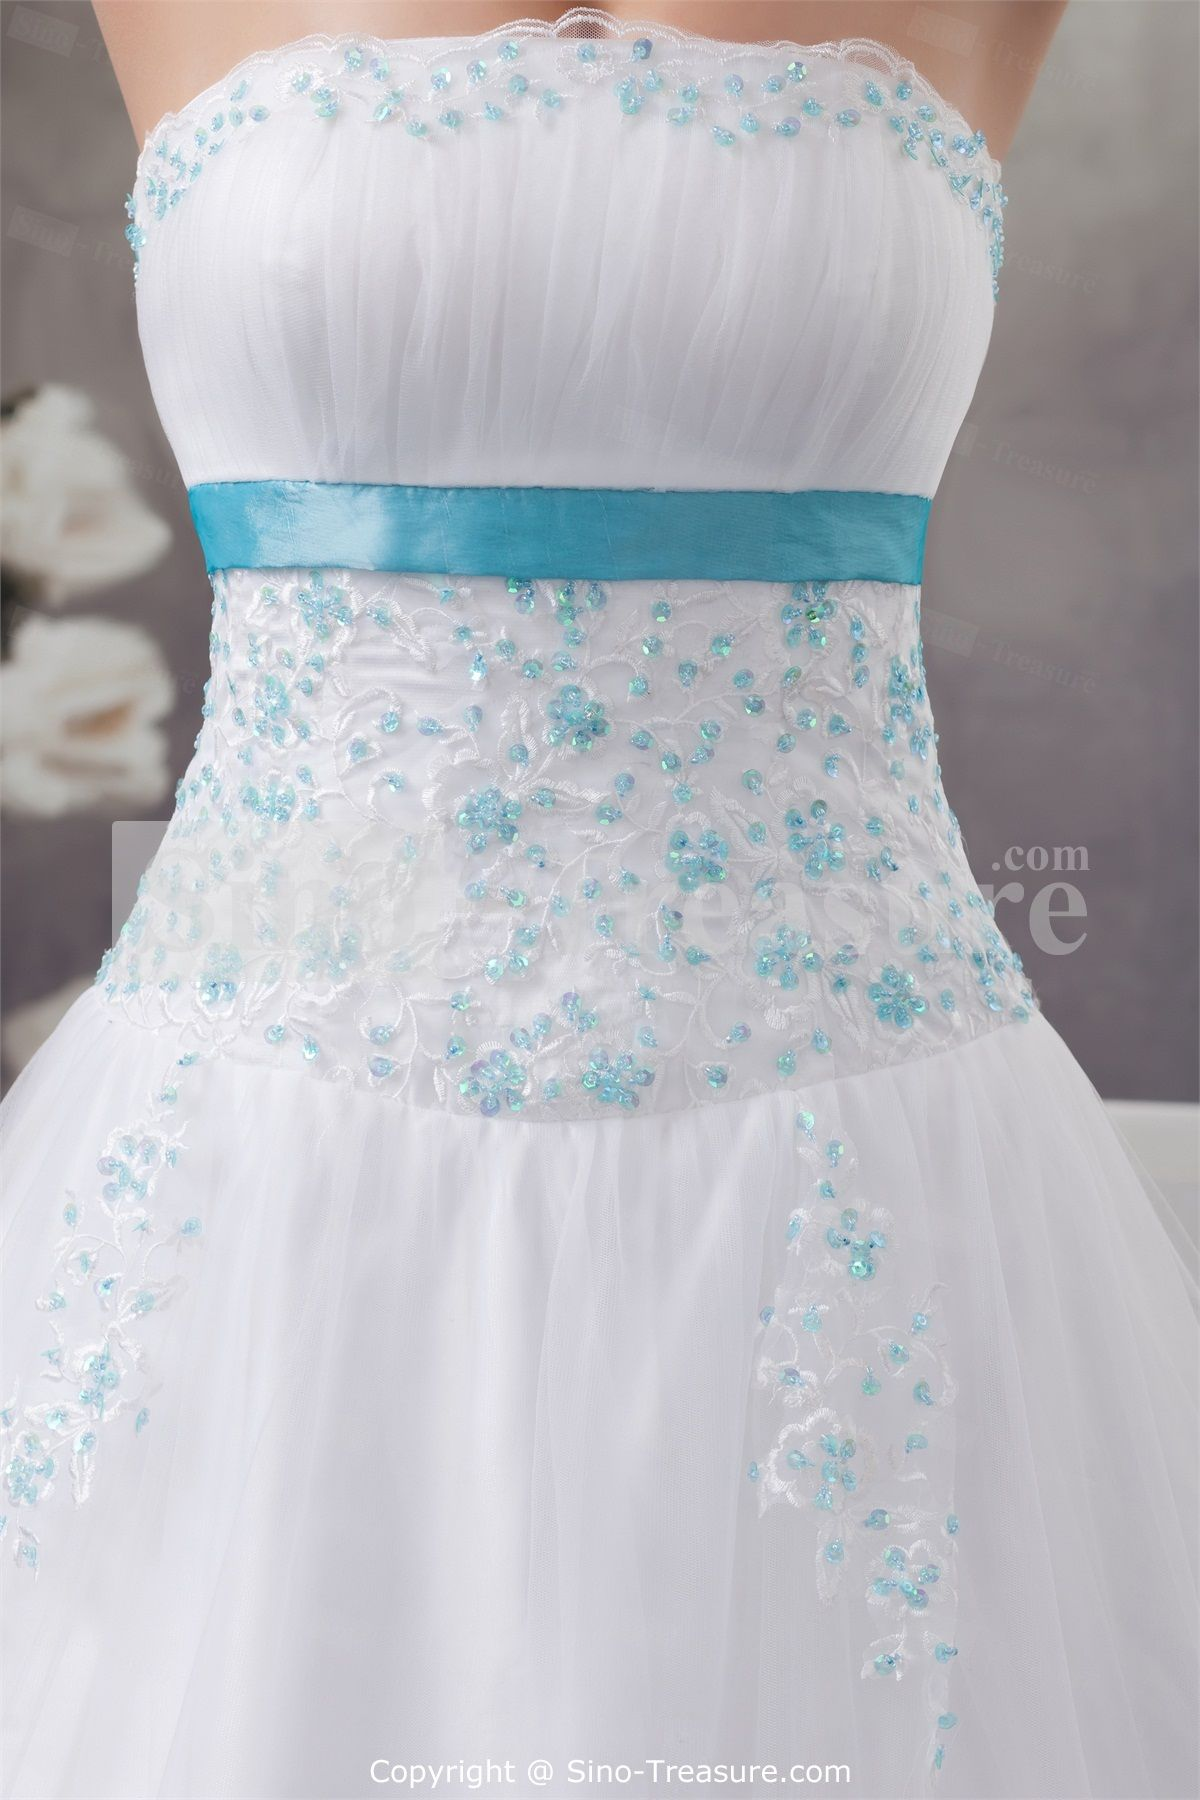 Bling wedding gown wedding dresses ball gown with bling for White wedding dress with blue accents